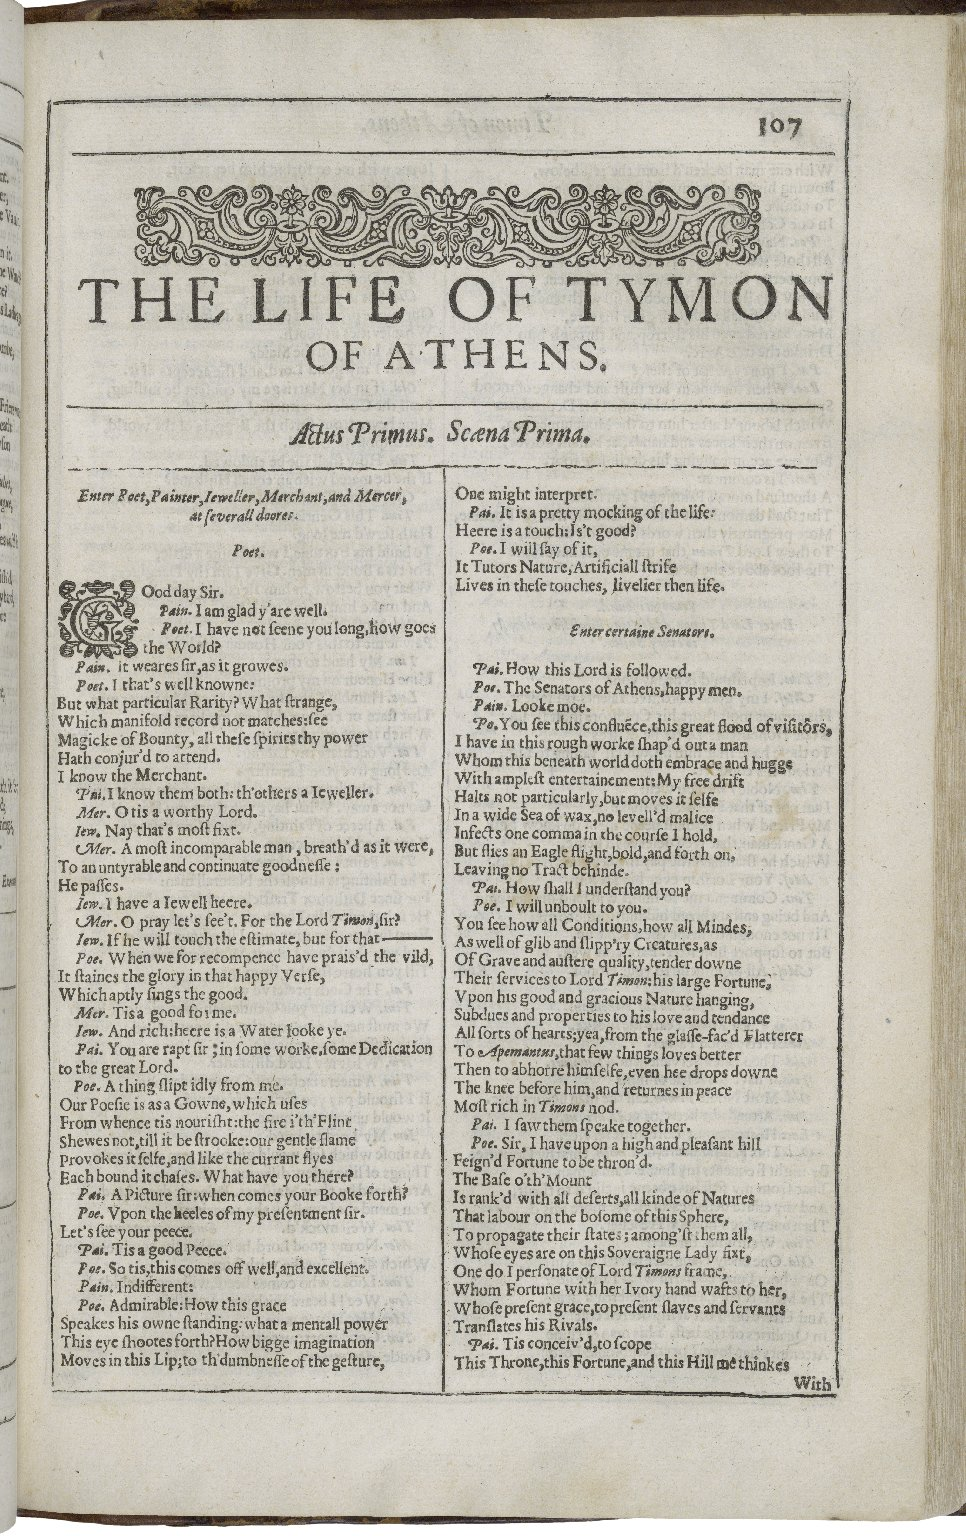 https://upload.wikimedia.org/wikipedia/commons/2/2e/Second_Folio_Title_Page_of_Timon_of_Athens.jpg